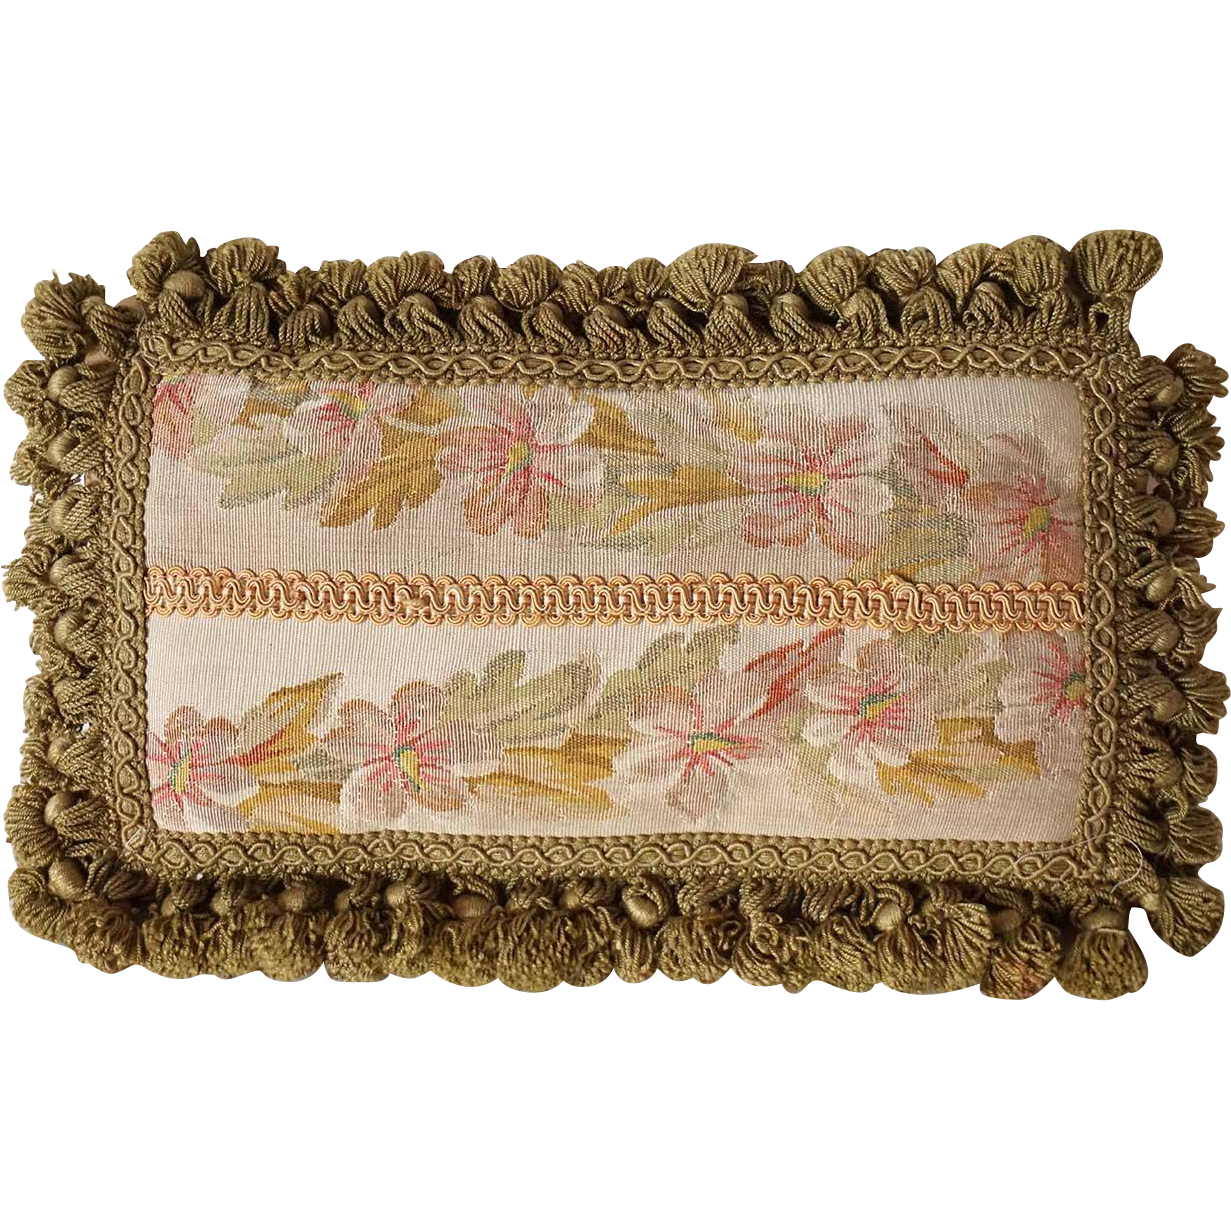 Small French Aubusson Tapestry and Tasseled Lumbar Pillow